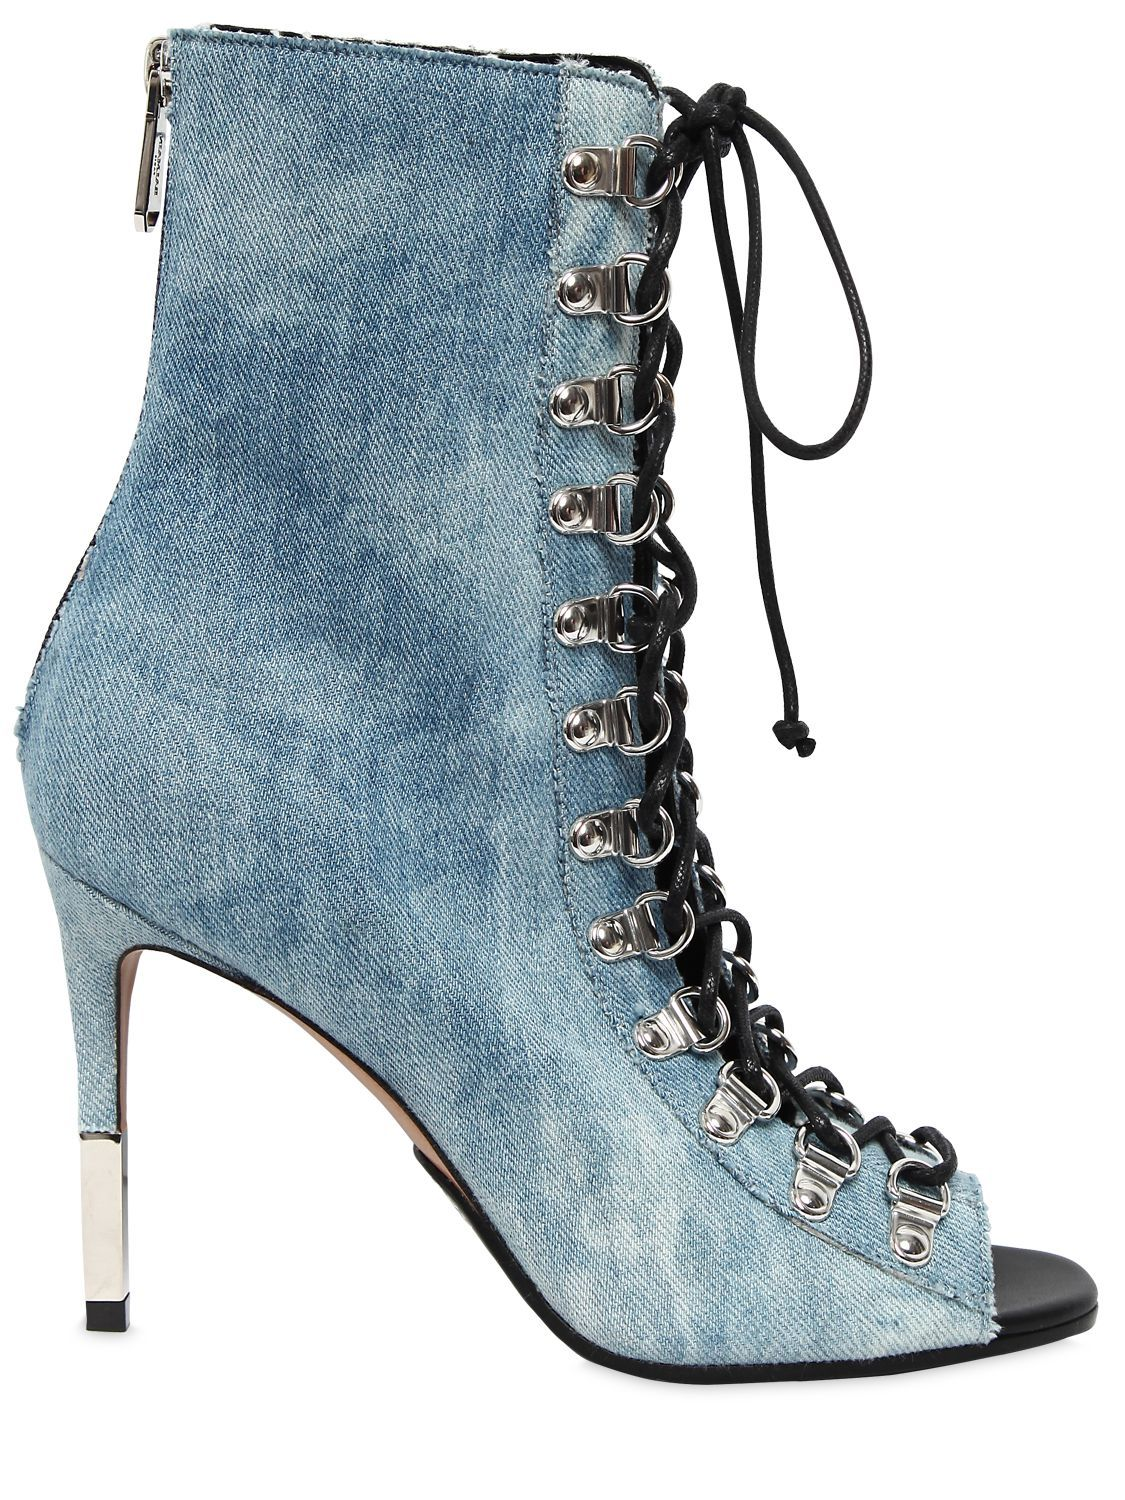 6ecaf71a89 BALMAIN 95MM CLUB DENIM ANKLE BOOTS. #balmain #shoes # | Balmain ...